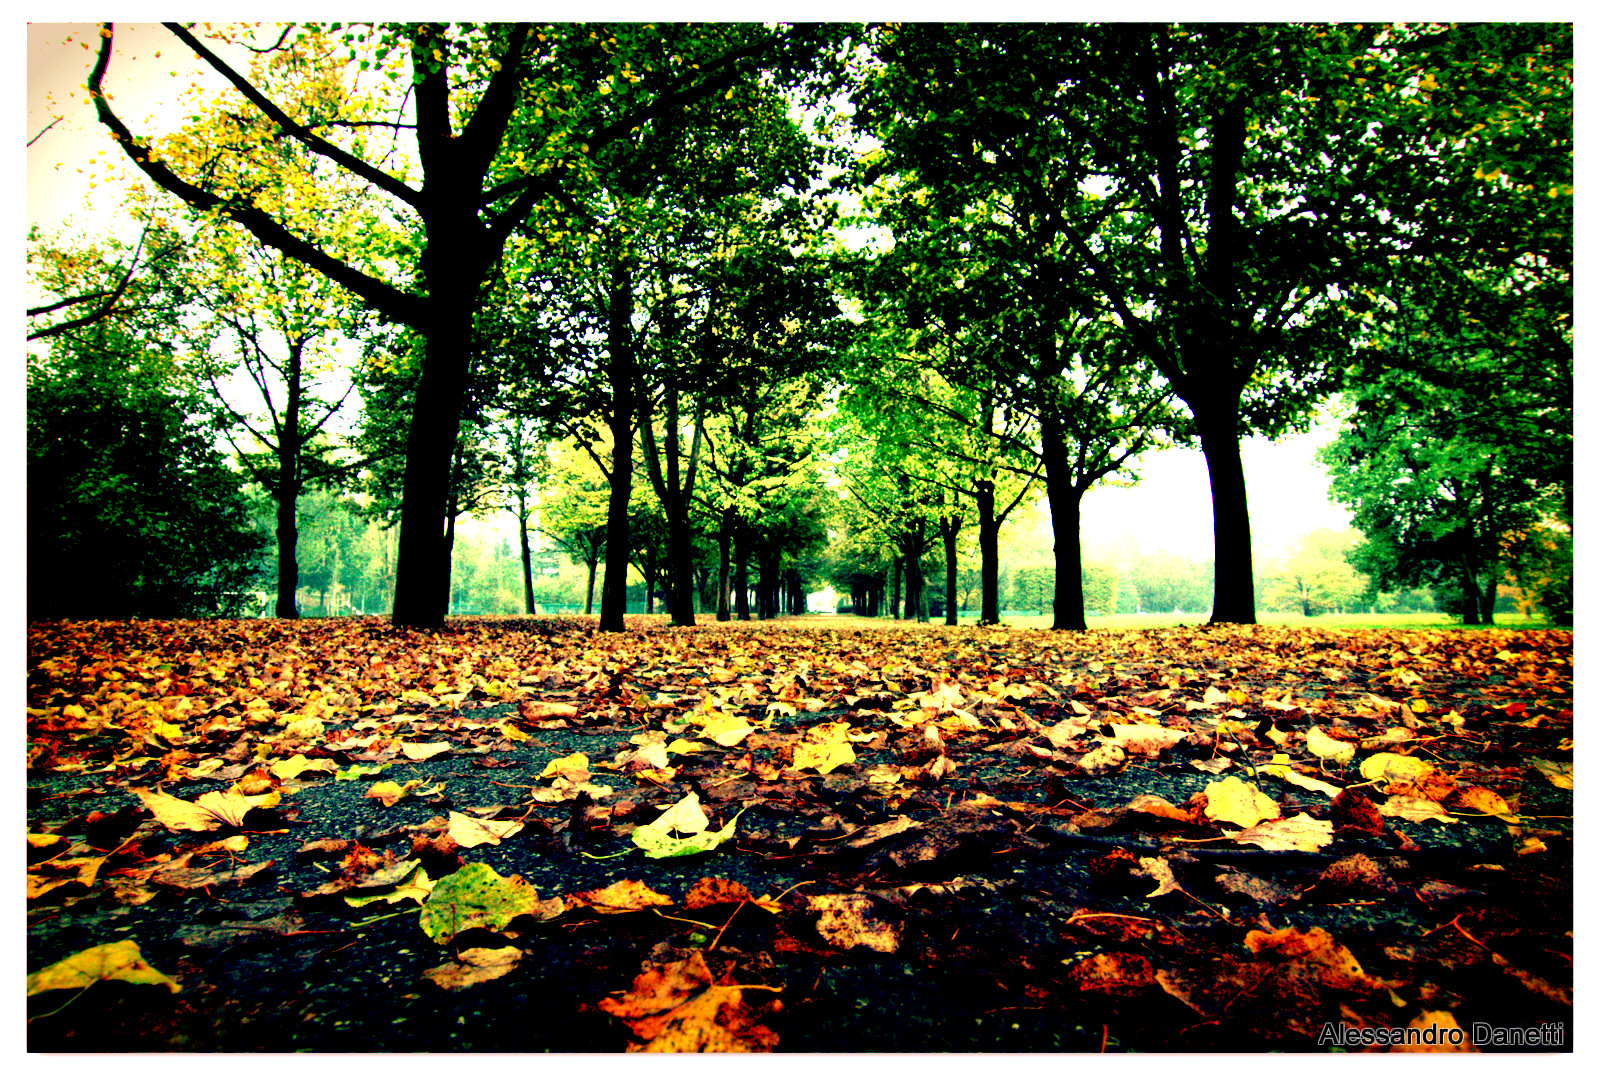 The Autumn falls on parks in Milan...